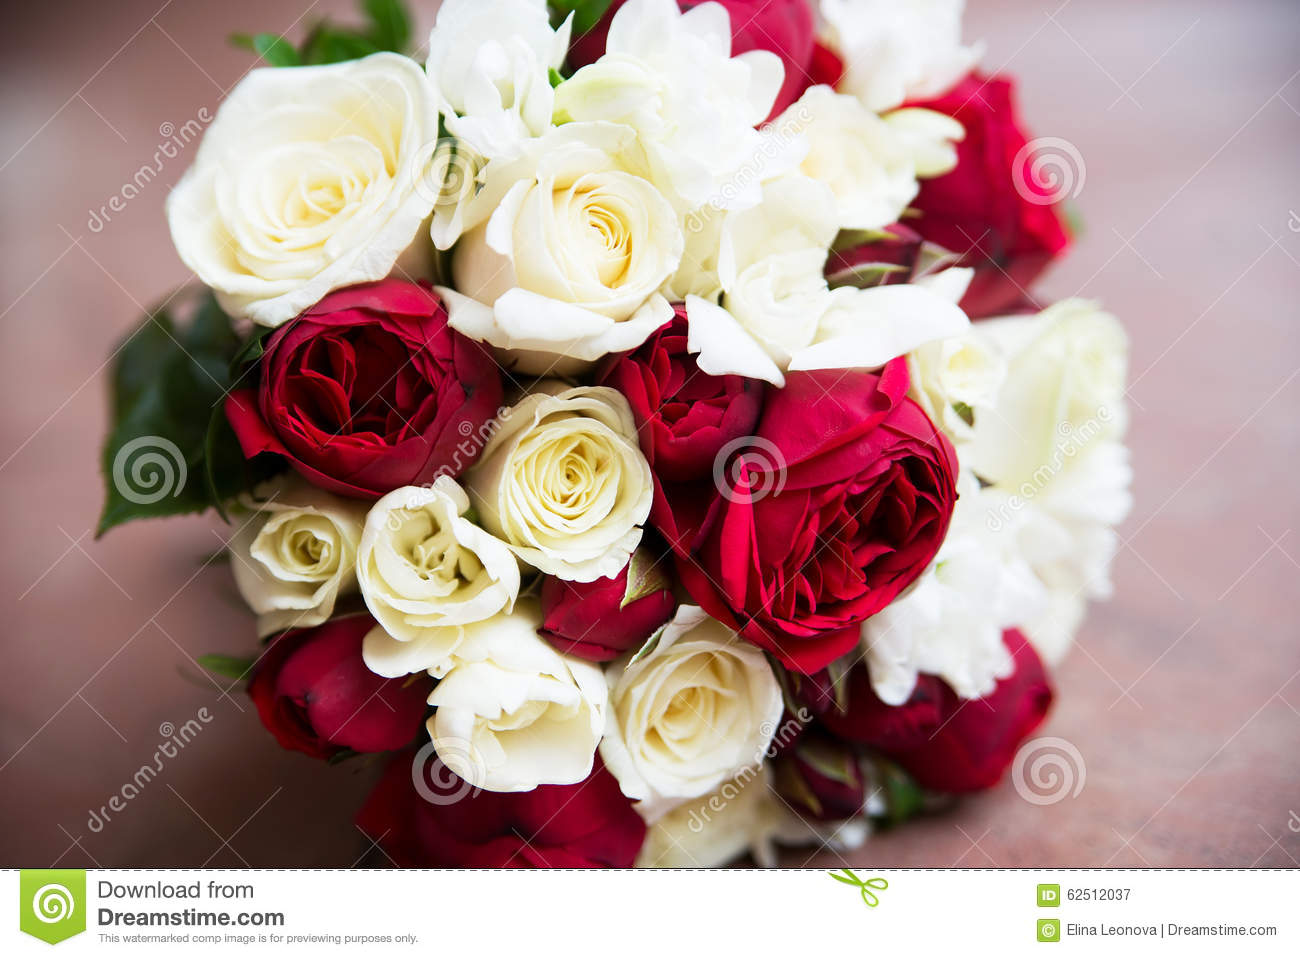 Wedding Flower Bouquet With Pink Red And White Roses Stock Image